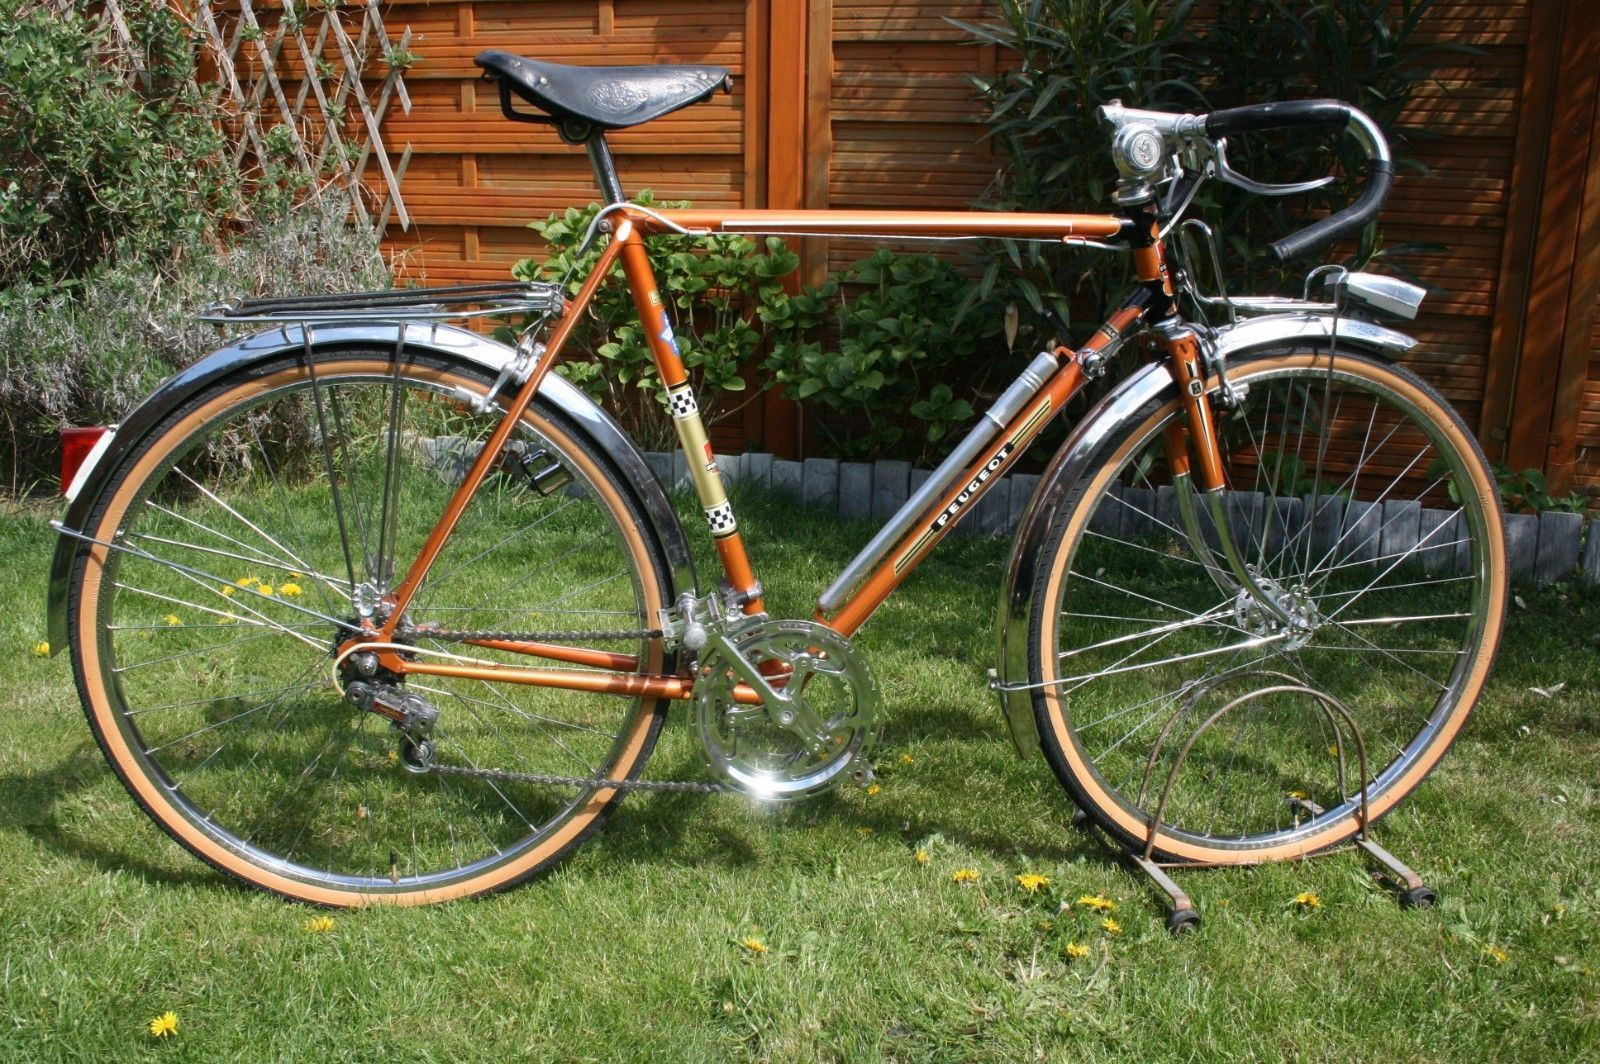 velo randonneur peugeot px 50 l old bike altes fahrrad 1975 wheels 650b eroica fotos. Black Bedroom Furniture Sets. Home Design Ideas